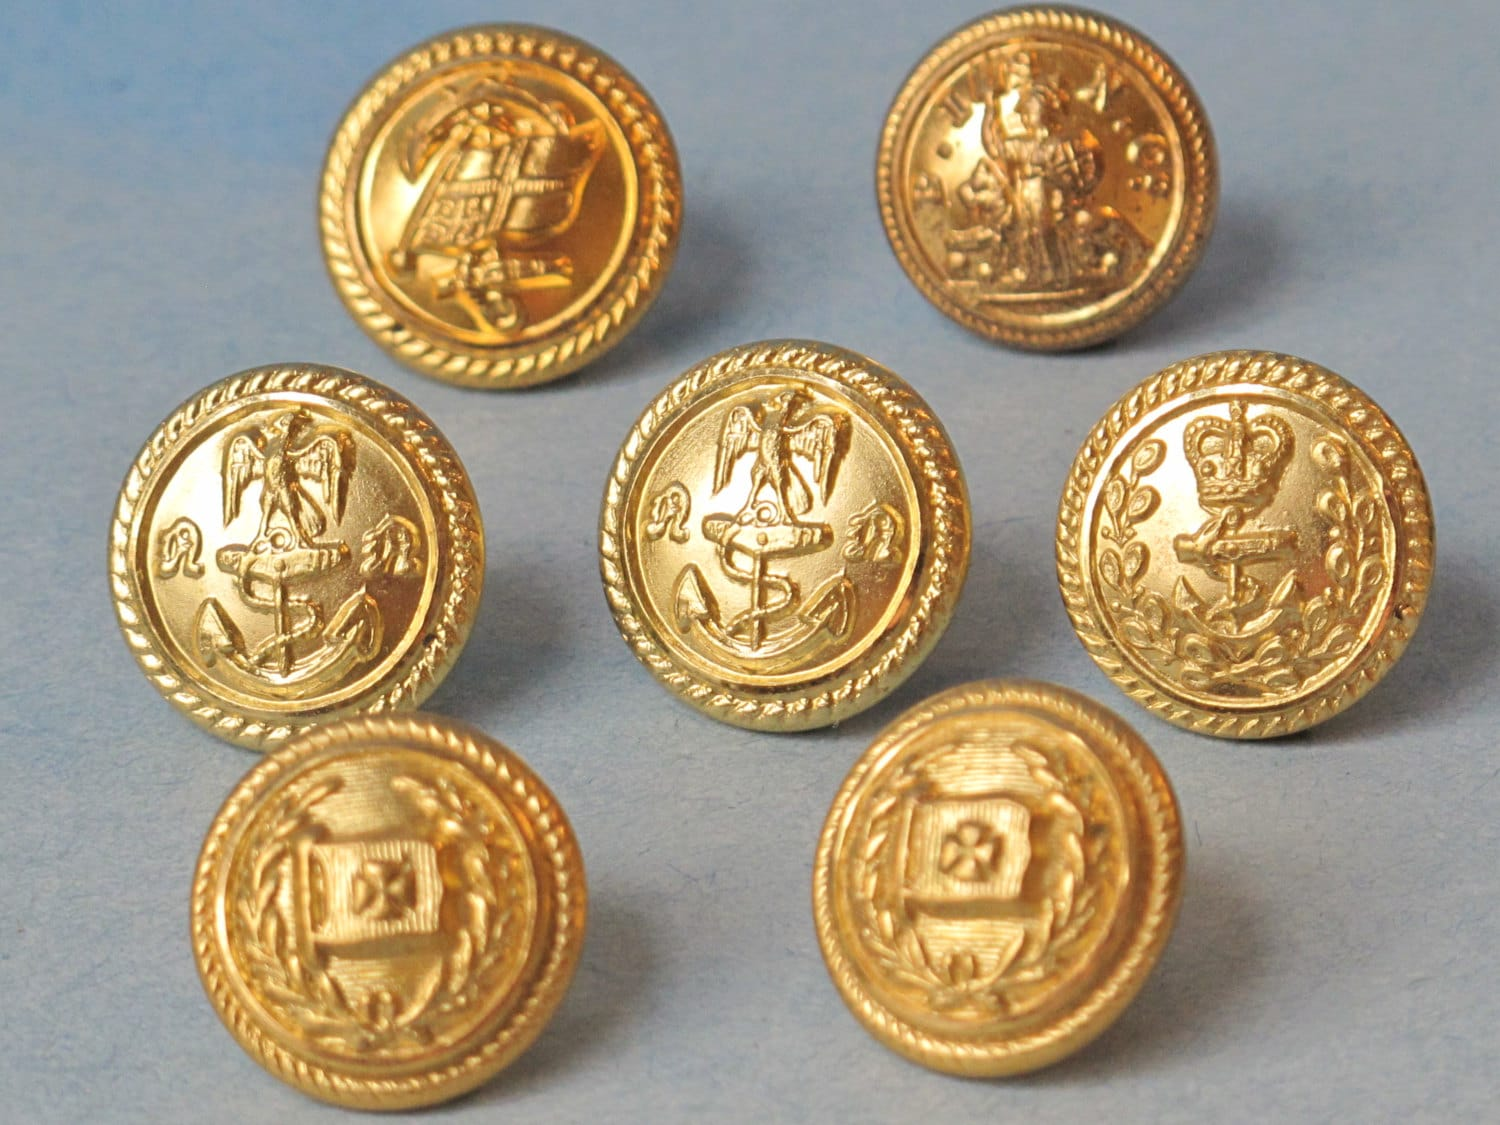 Vintage British Army Metal Buttons Set of 14 / Mid Century